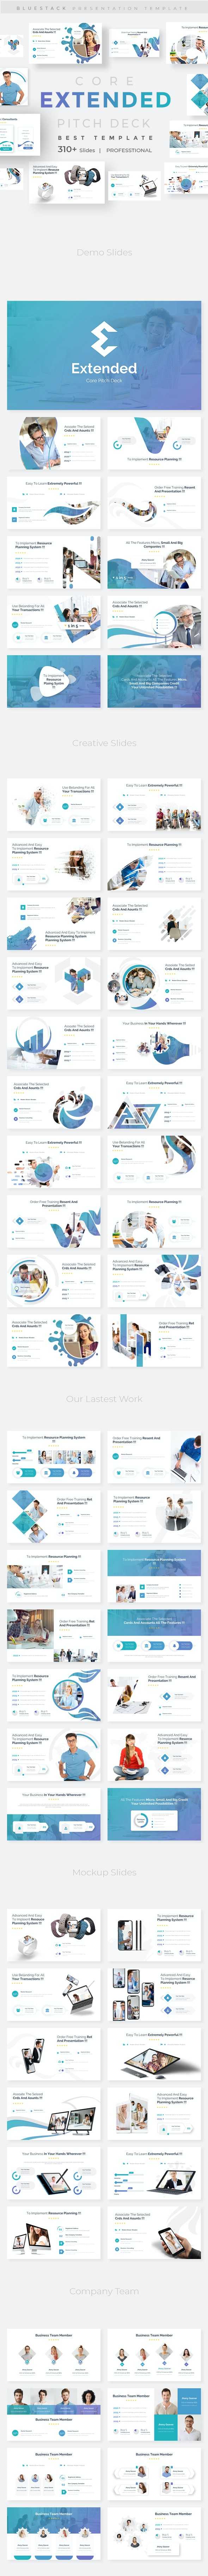 Extended Core Pitch Deck Powerpoint Template - Business PowerPoint Templates